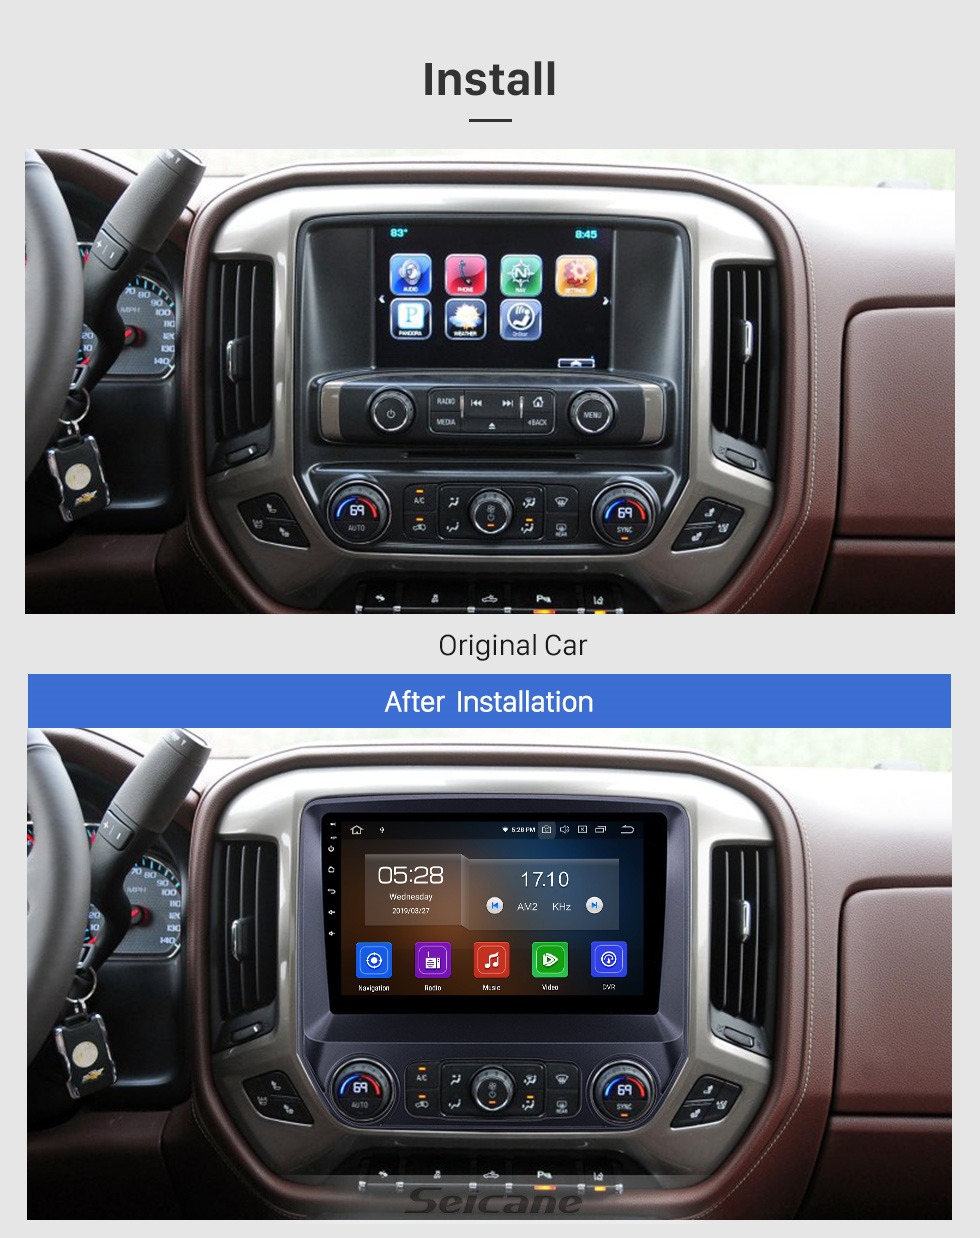 Seicane 2014-2018 Chevy Chevrolet Colorado 10.1 inch Bleutooth Radio Android 9.0 GPS Navi HD Touchscreen Carplay Stereo support DVR DVD Player 4G WIFI